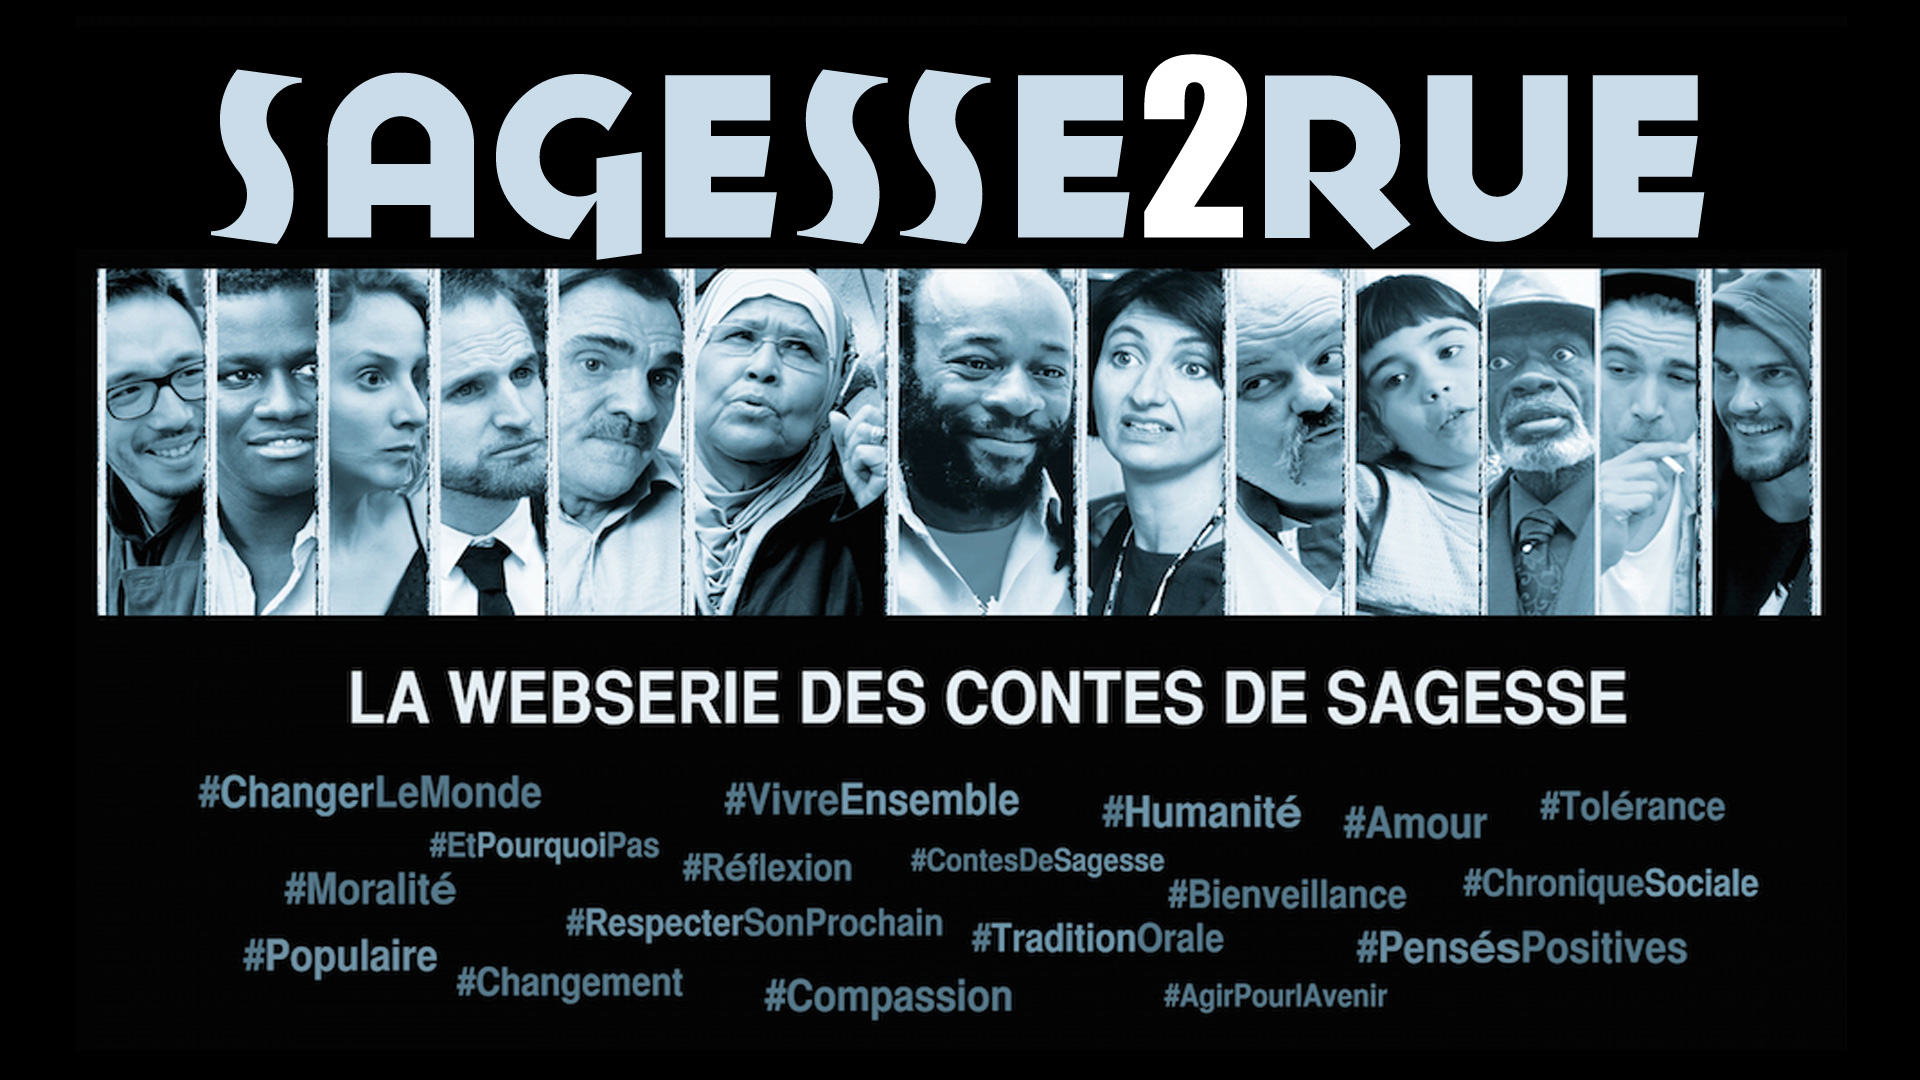 Sagesse2rue (Tales4Today)